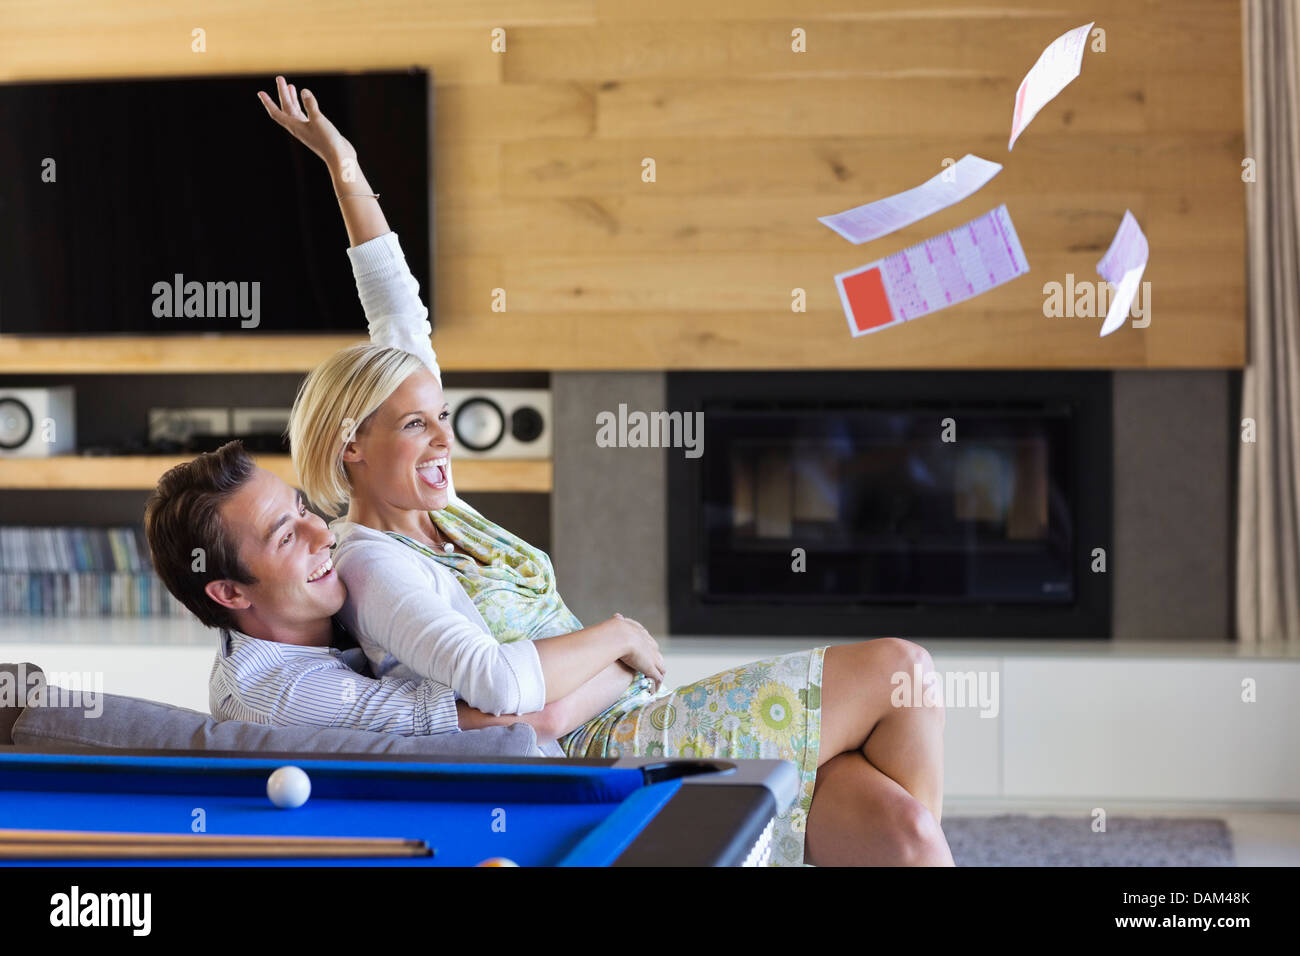 Woman tossing lottery tickets in living room Stock Photo